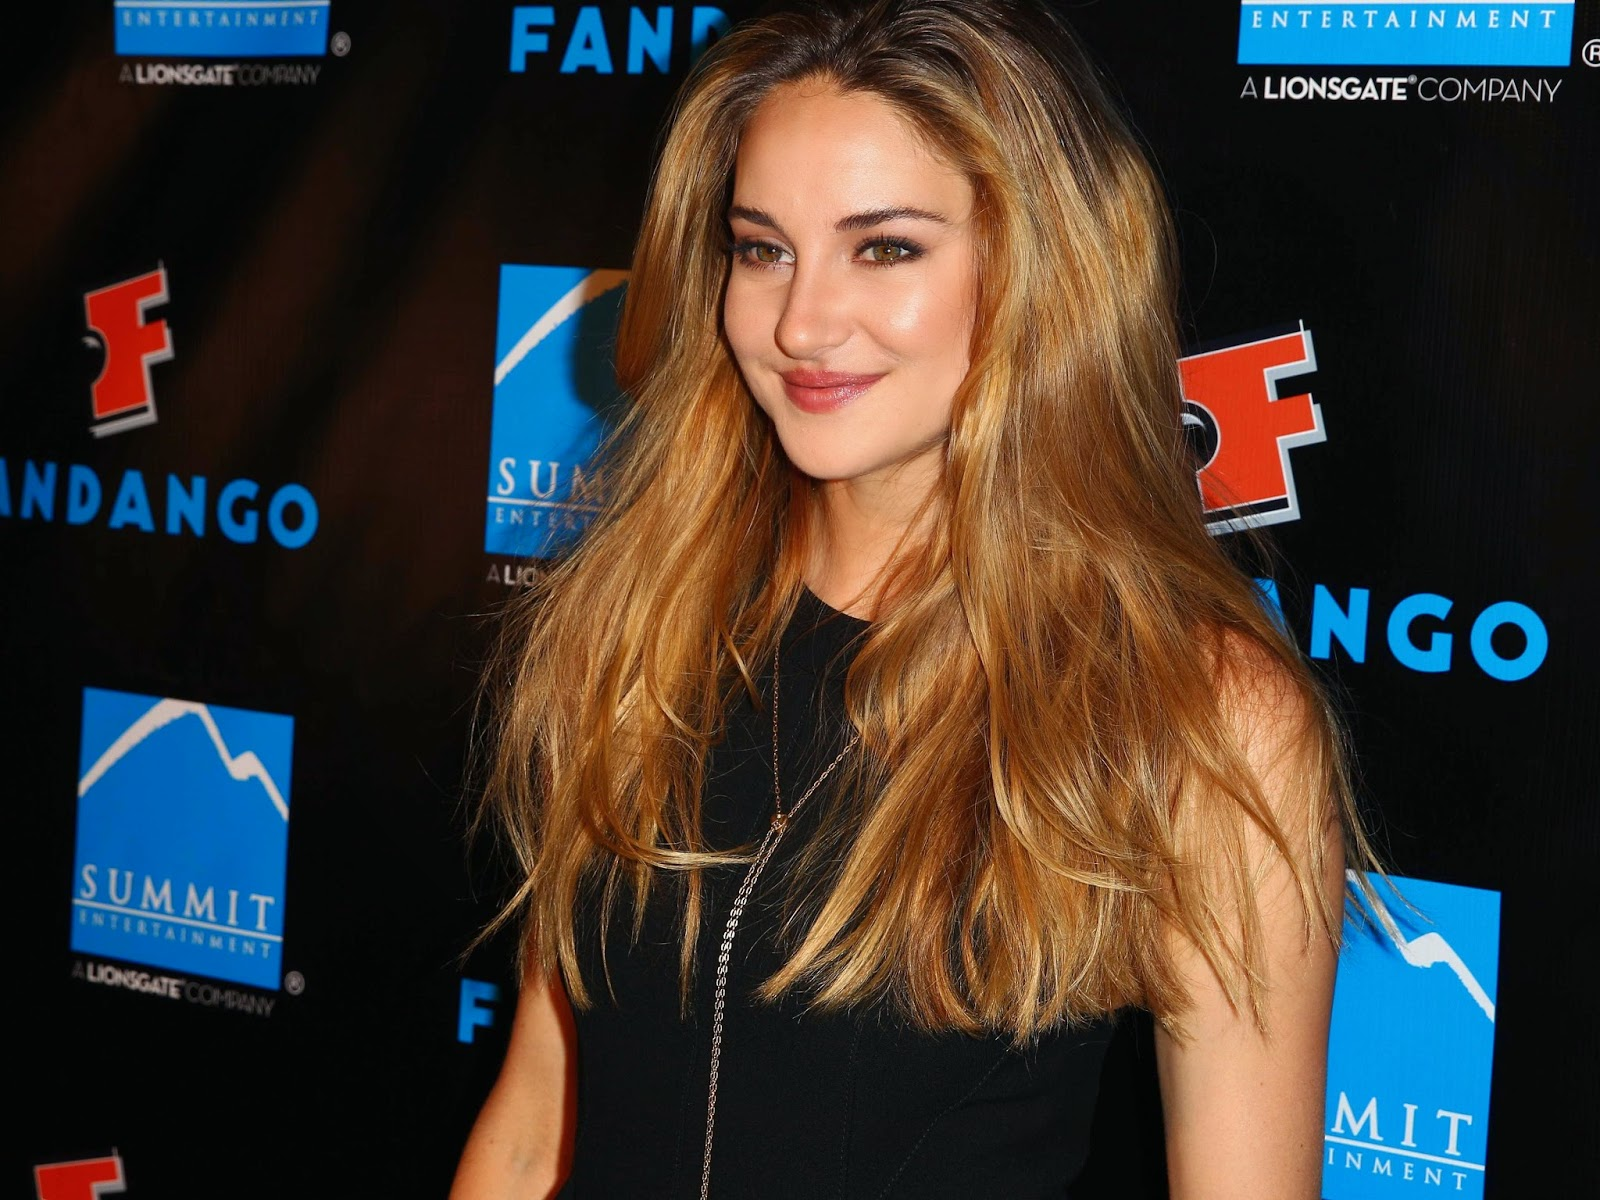 photos Actress Shailene Woodley Divergent Movie HD wallpaper